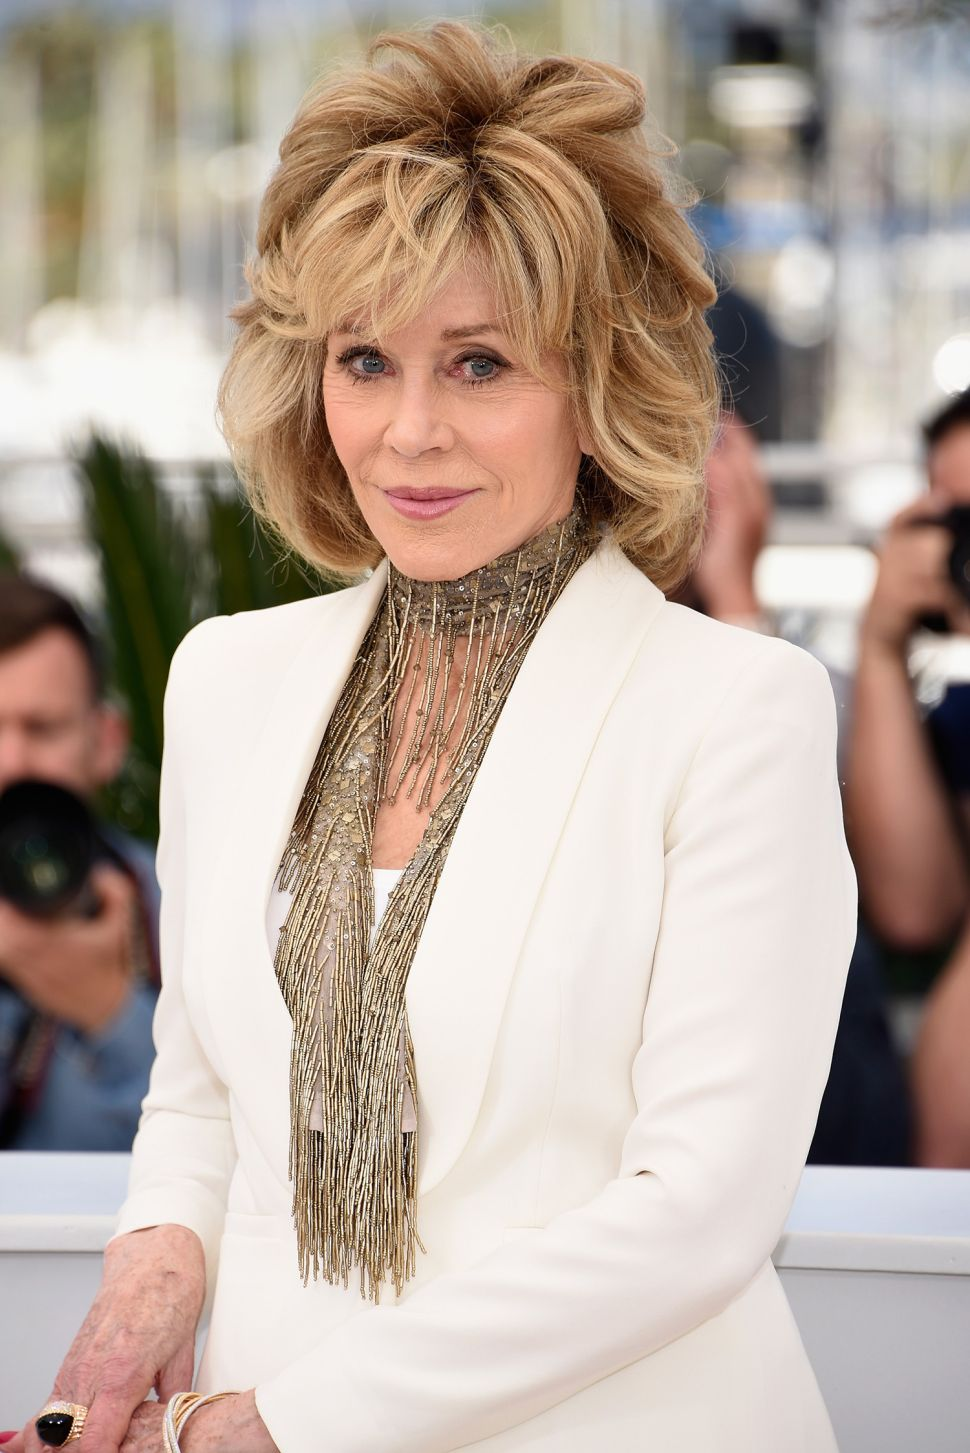 To Do This Week in New York: A Night of Comedy With Jane Fonda